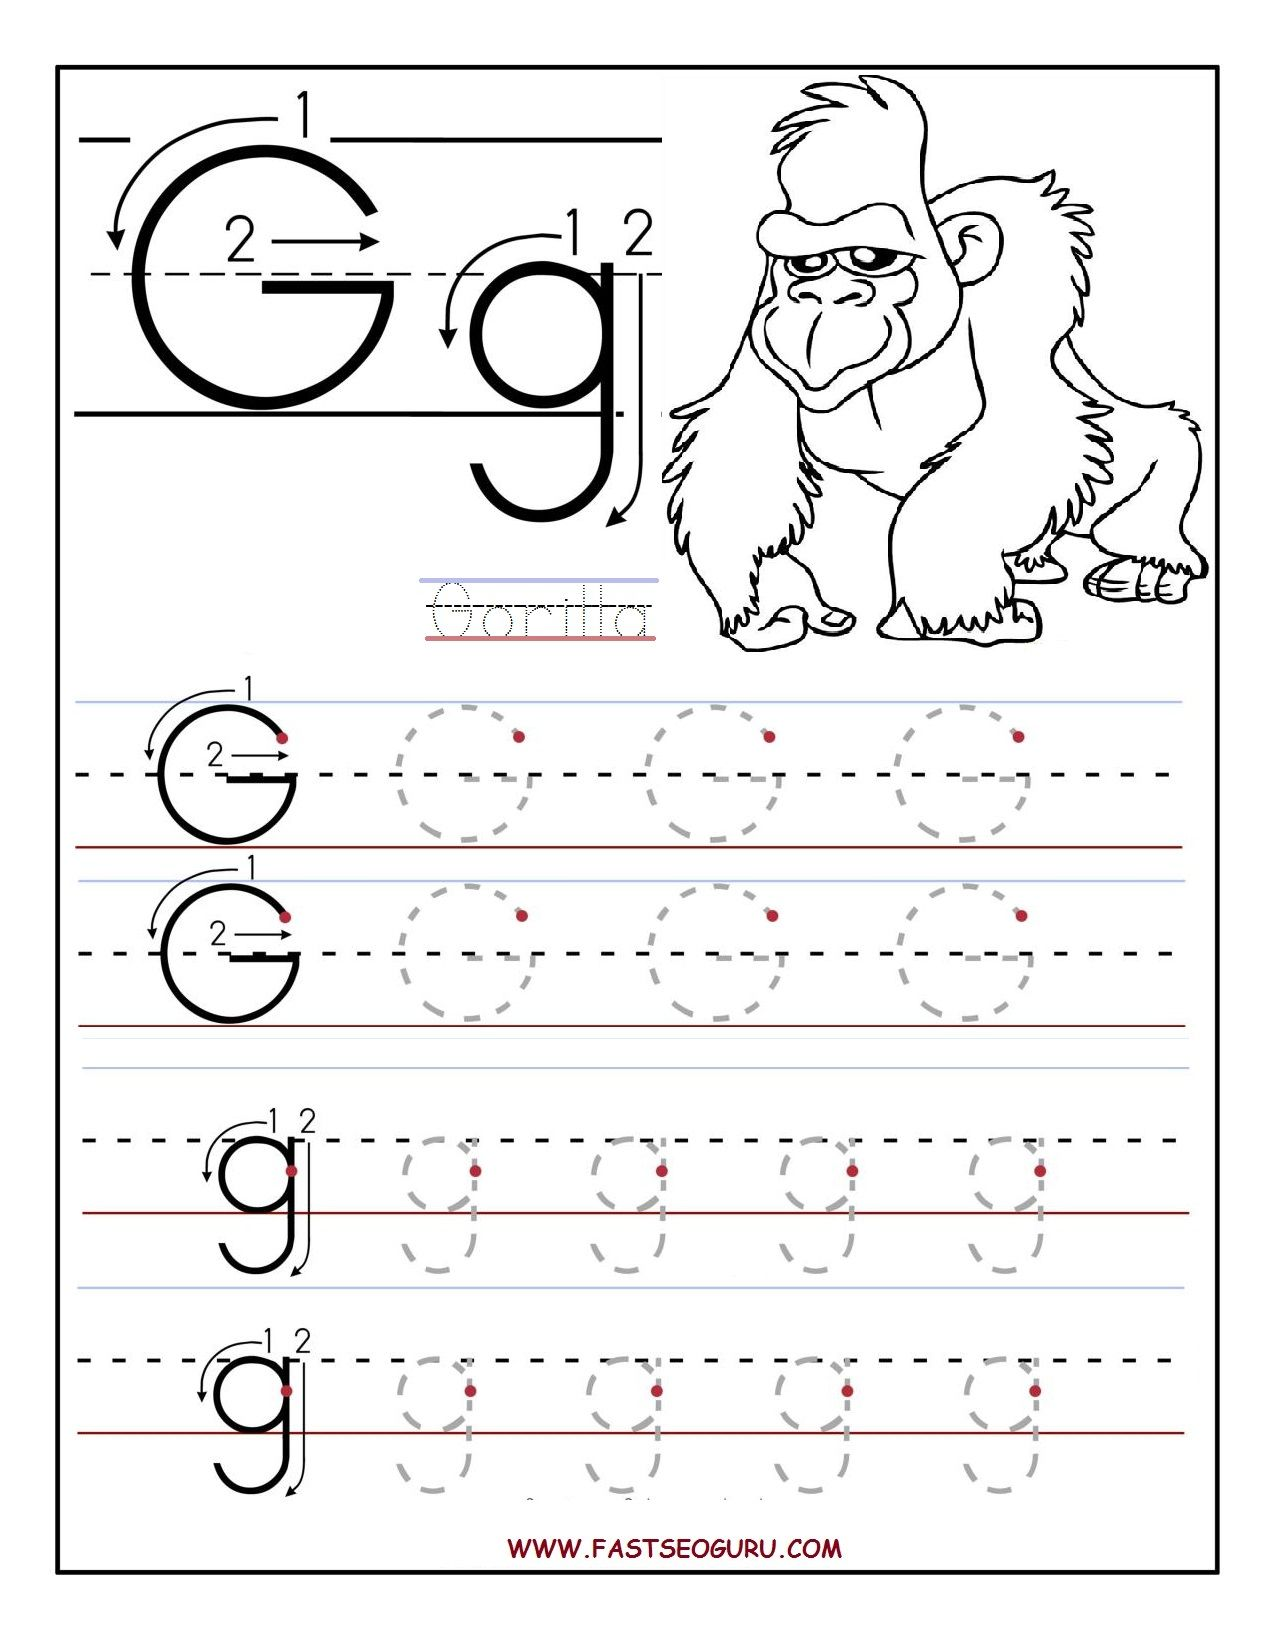 Worksheet Letters Preschool 1000 images about preschool at home on pinterest letter c worksheets alphabet and printable letters